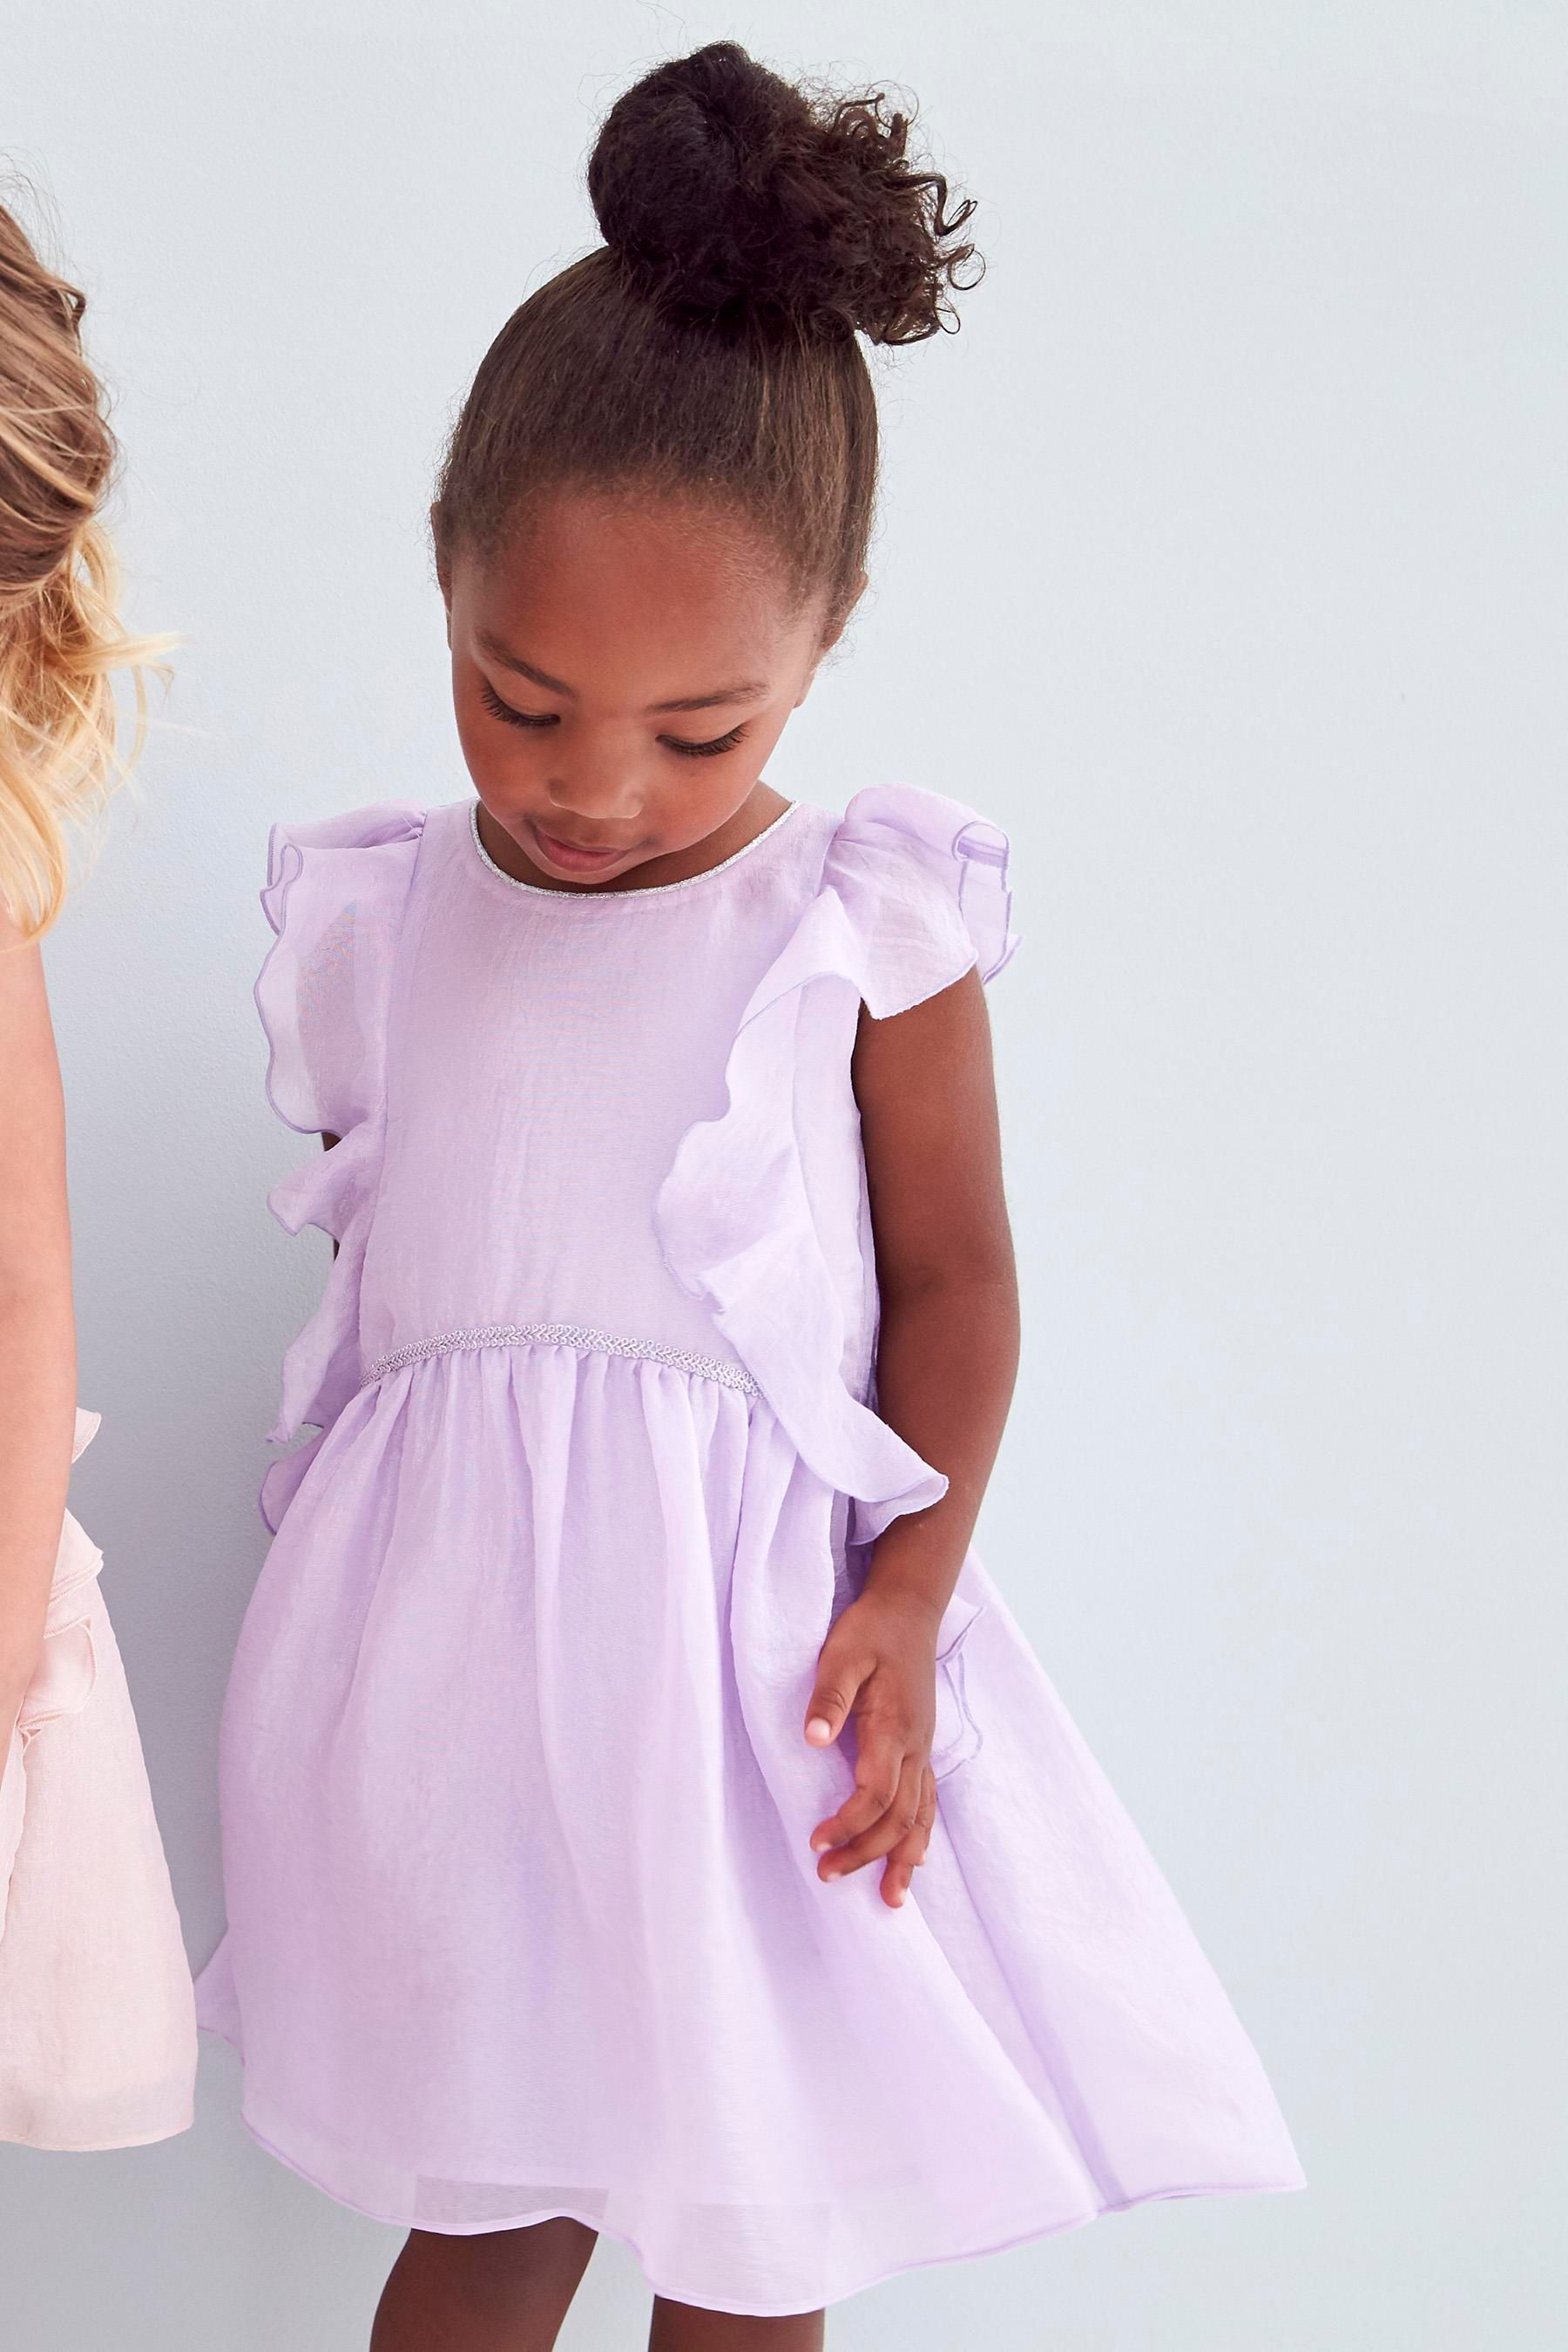 c742b6334 Buy Lilac Frill Party Dress (3mths-6yrs) from the Next UK online ...